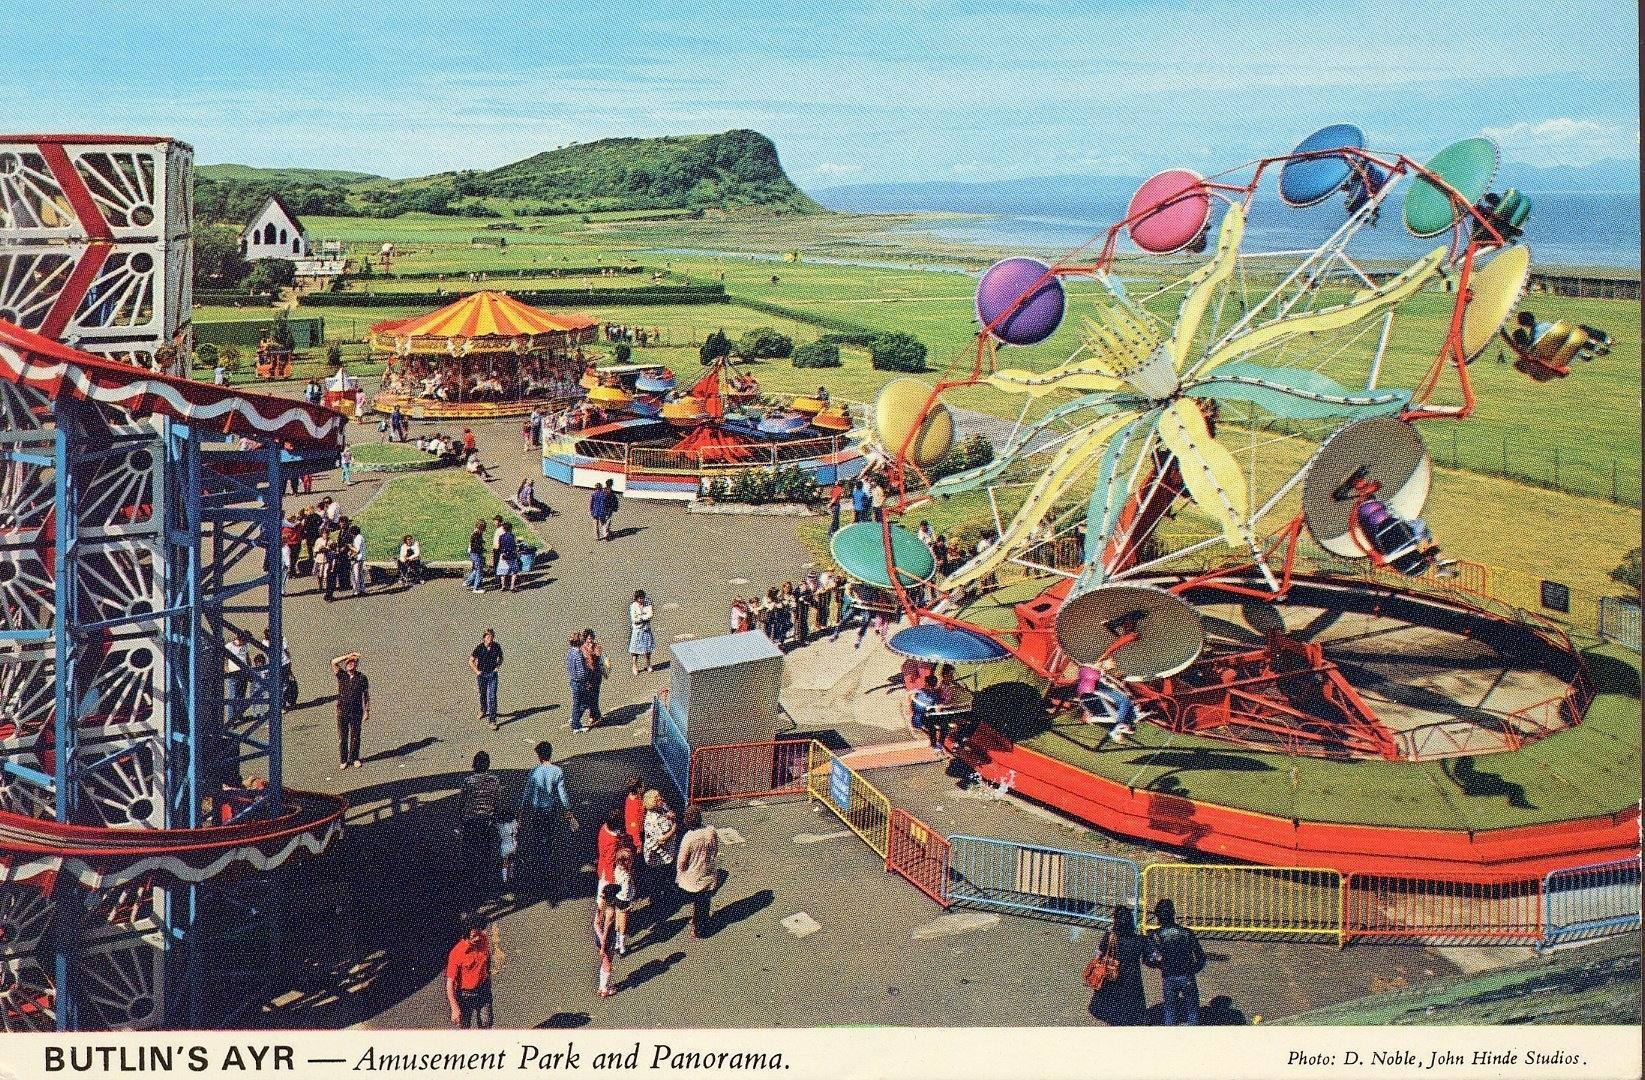 Butlins Ayr 1970s - Amusement Park